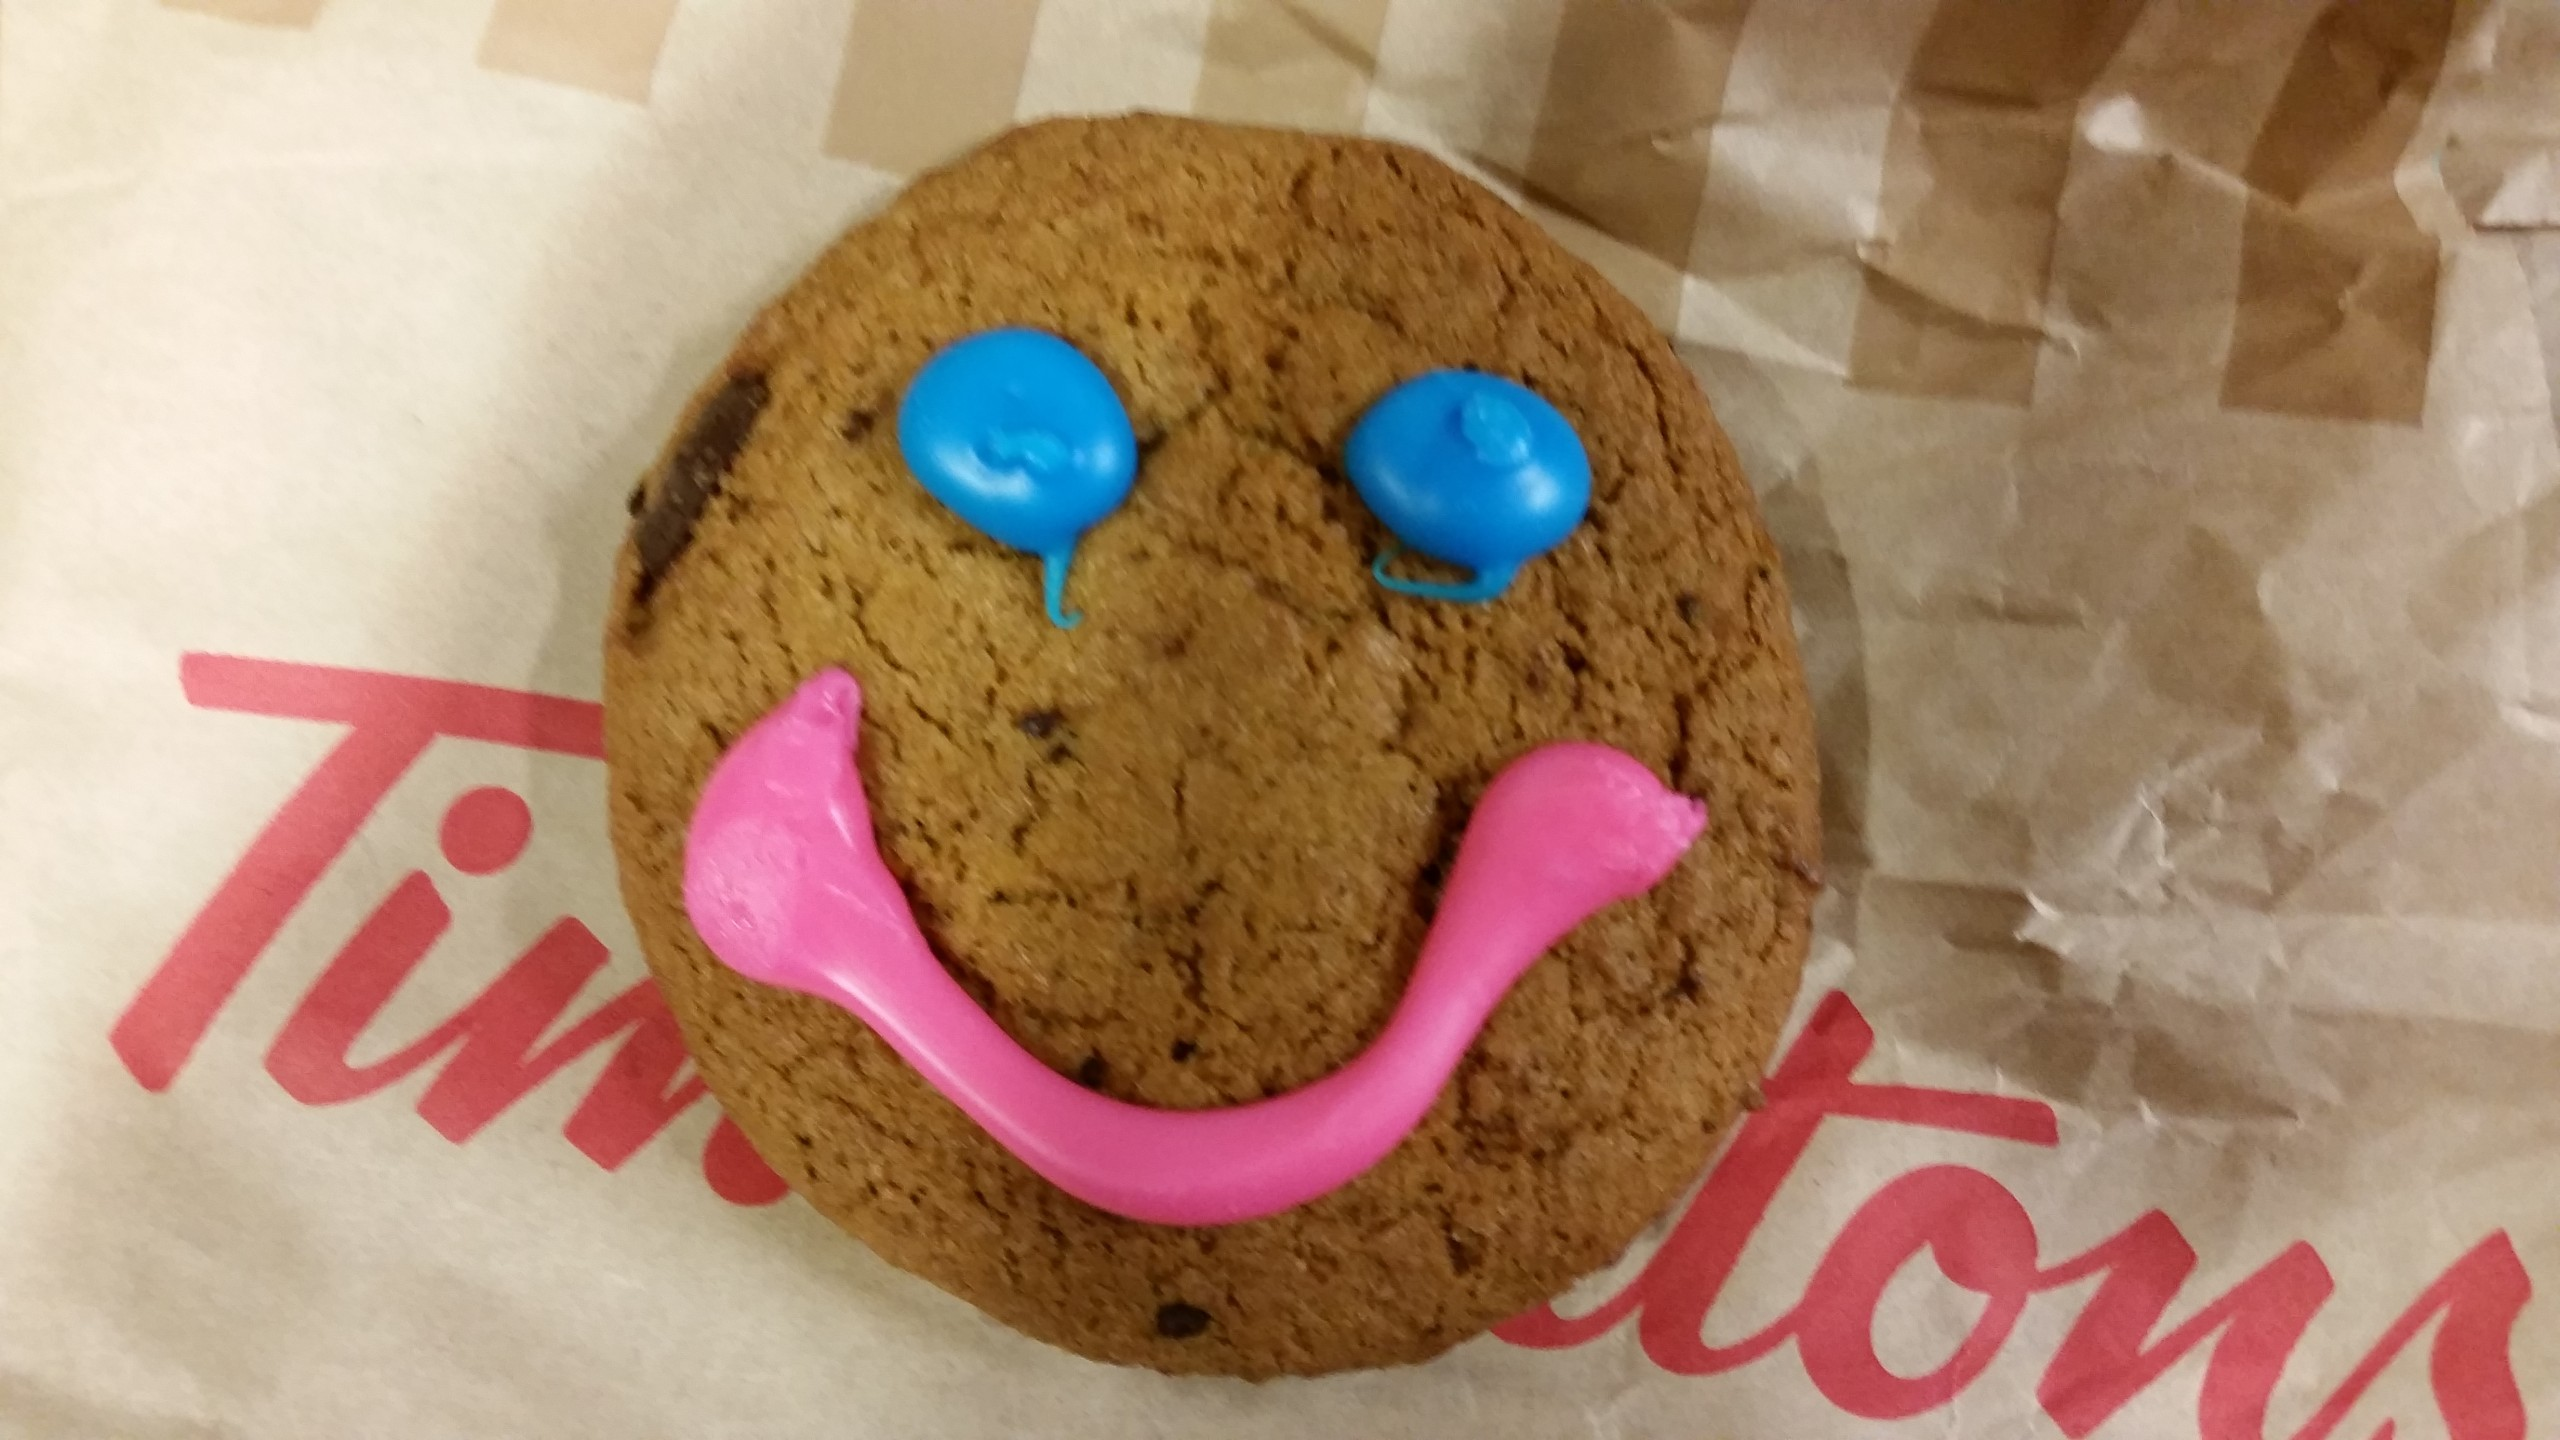 Smile Cookies are back raising money for the Northern Lights Health Foundation